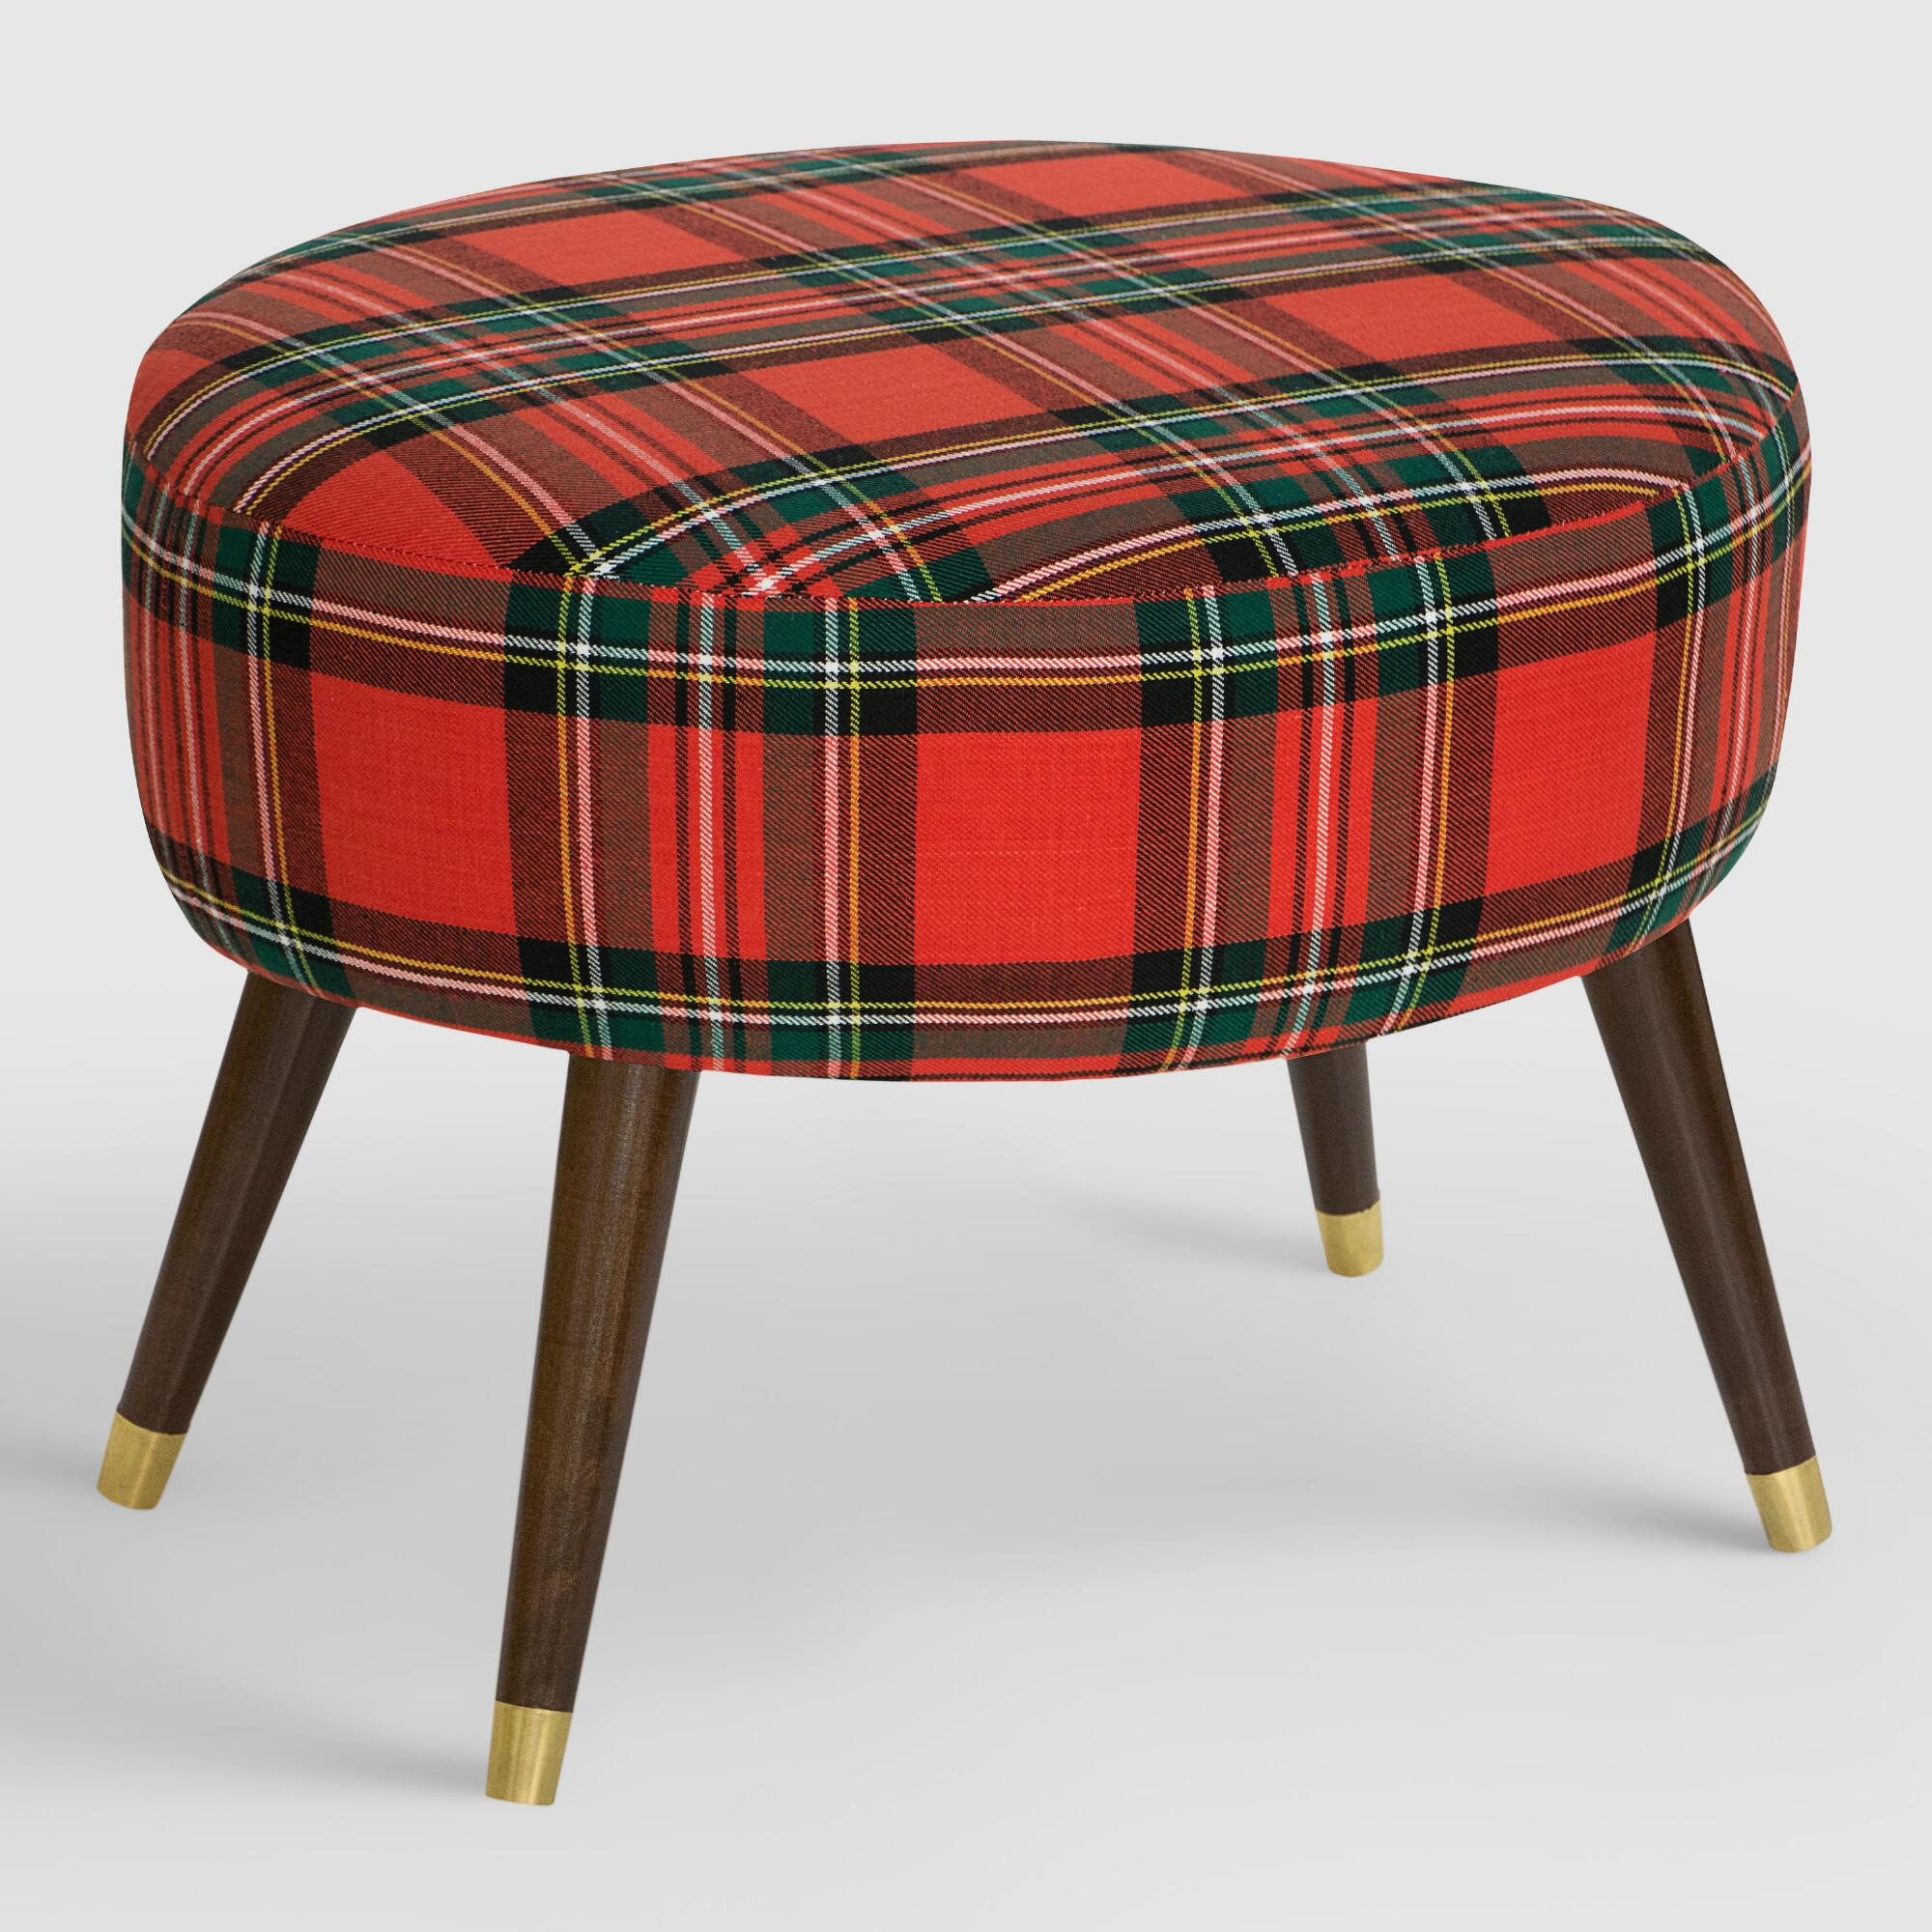 Ottoman Upholstery Oval Ancient Stewart Plaid Upholstered Ottoman Fabric By World